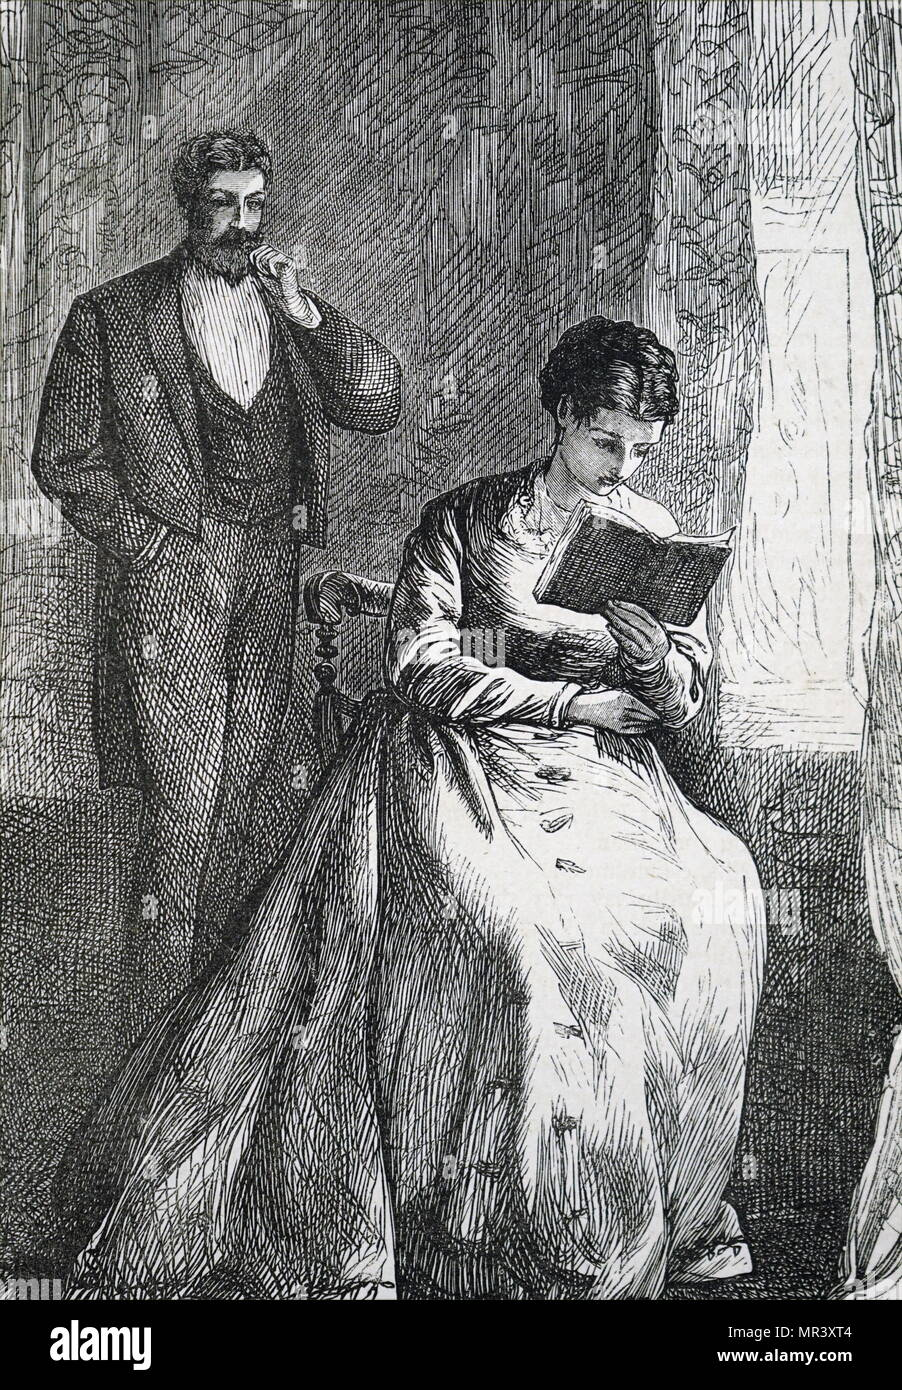 Illustration depicting a young woman reading her book. Illustrated Francis Arthur Foster. Dated 19th century - Stock Image